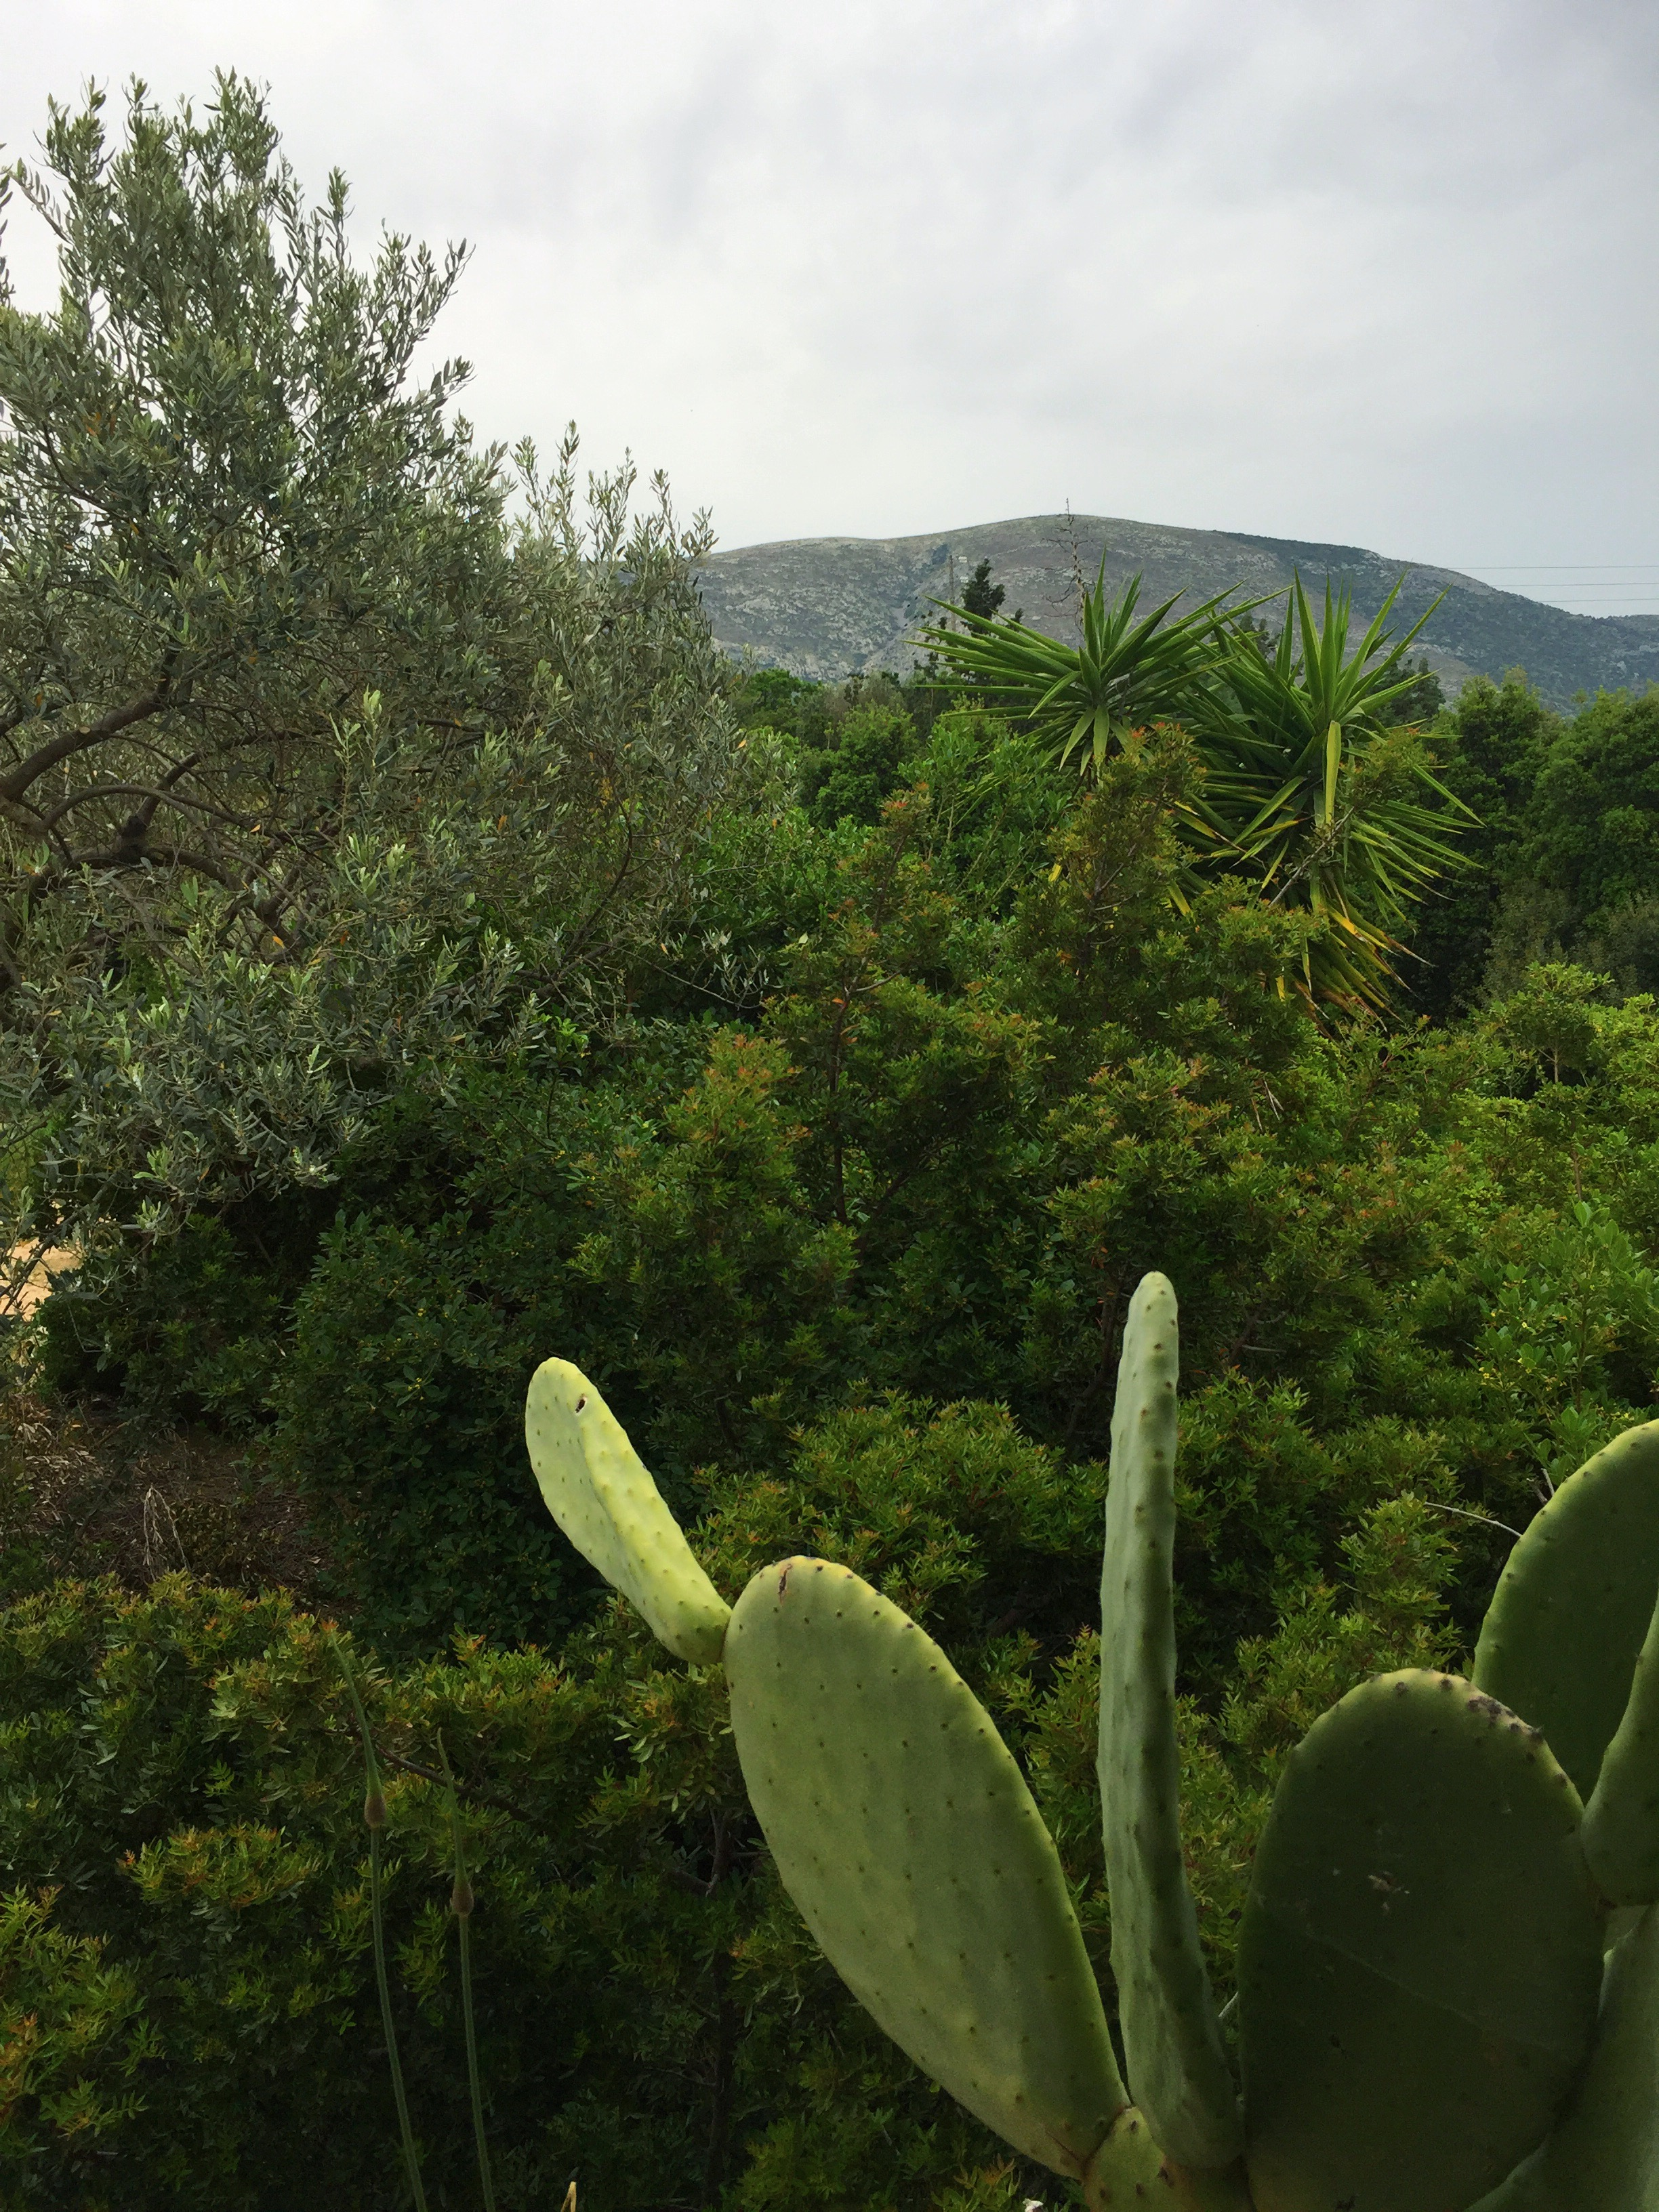 Views of the biodynamic farm in Markopoulo, where the Vipassana near Athens is held.